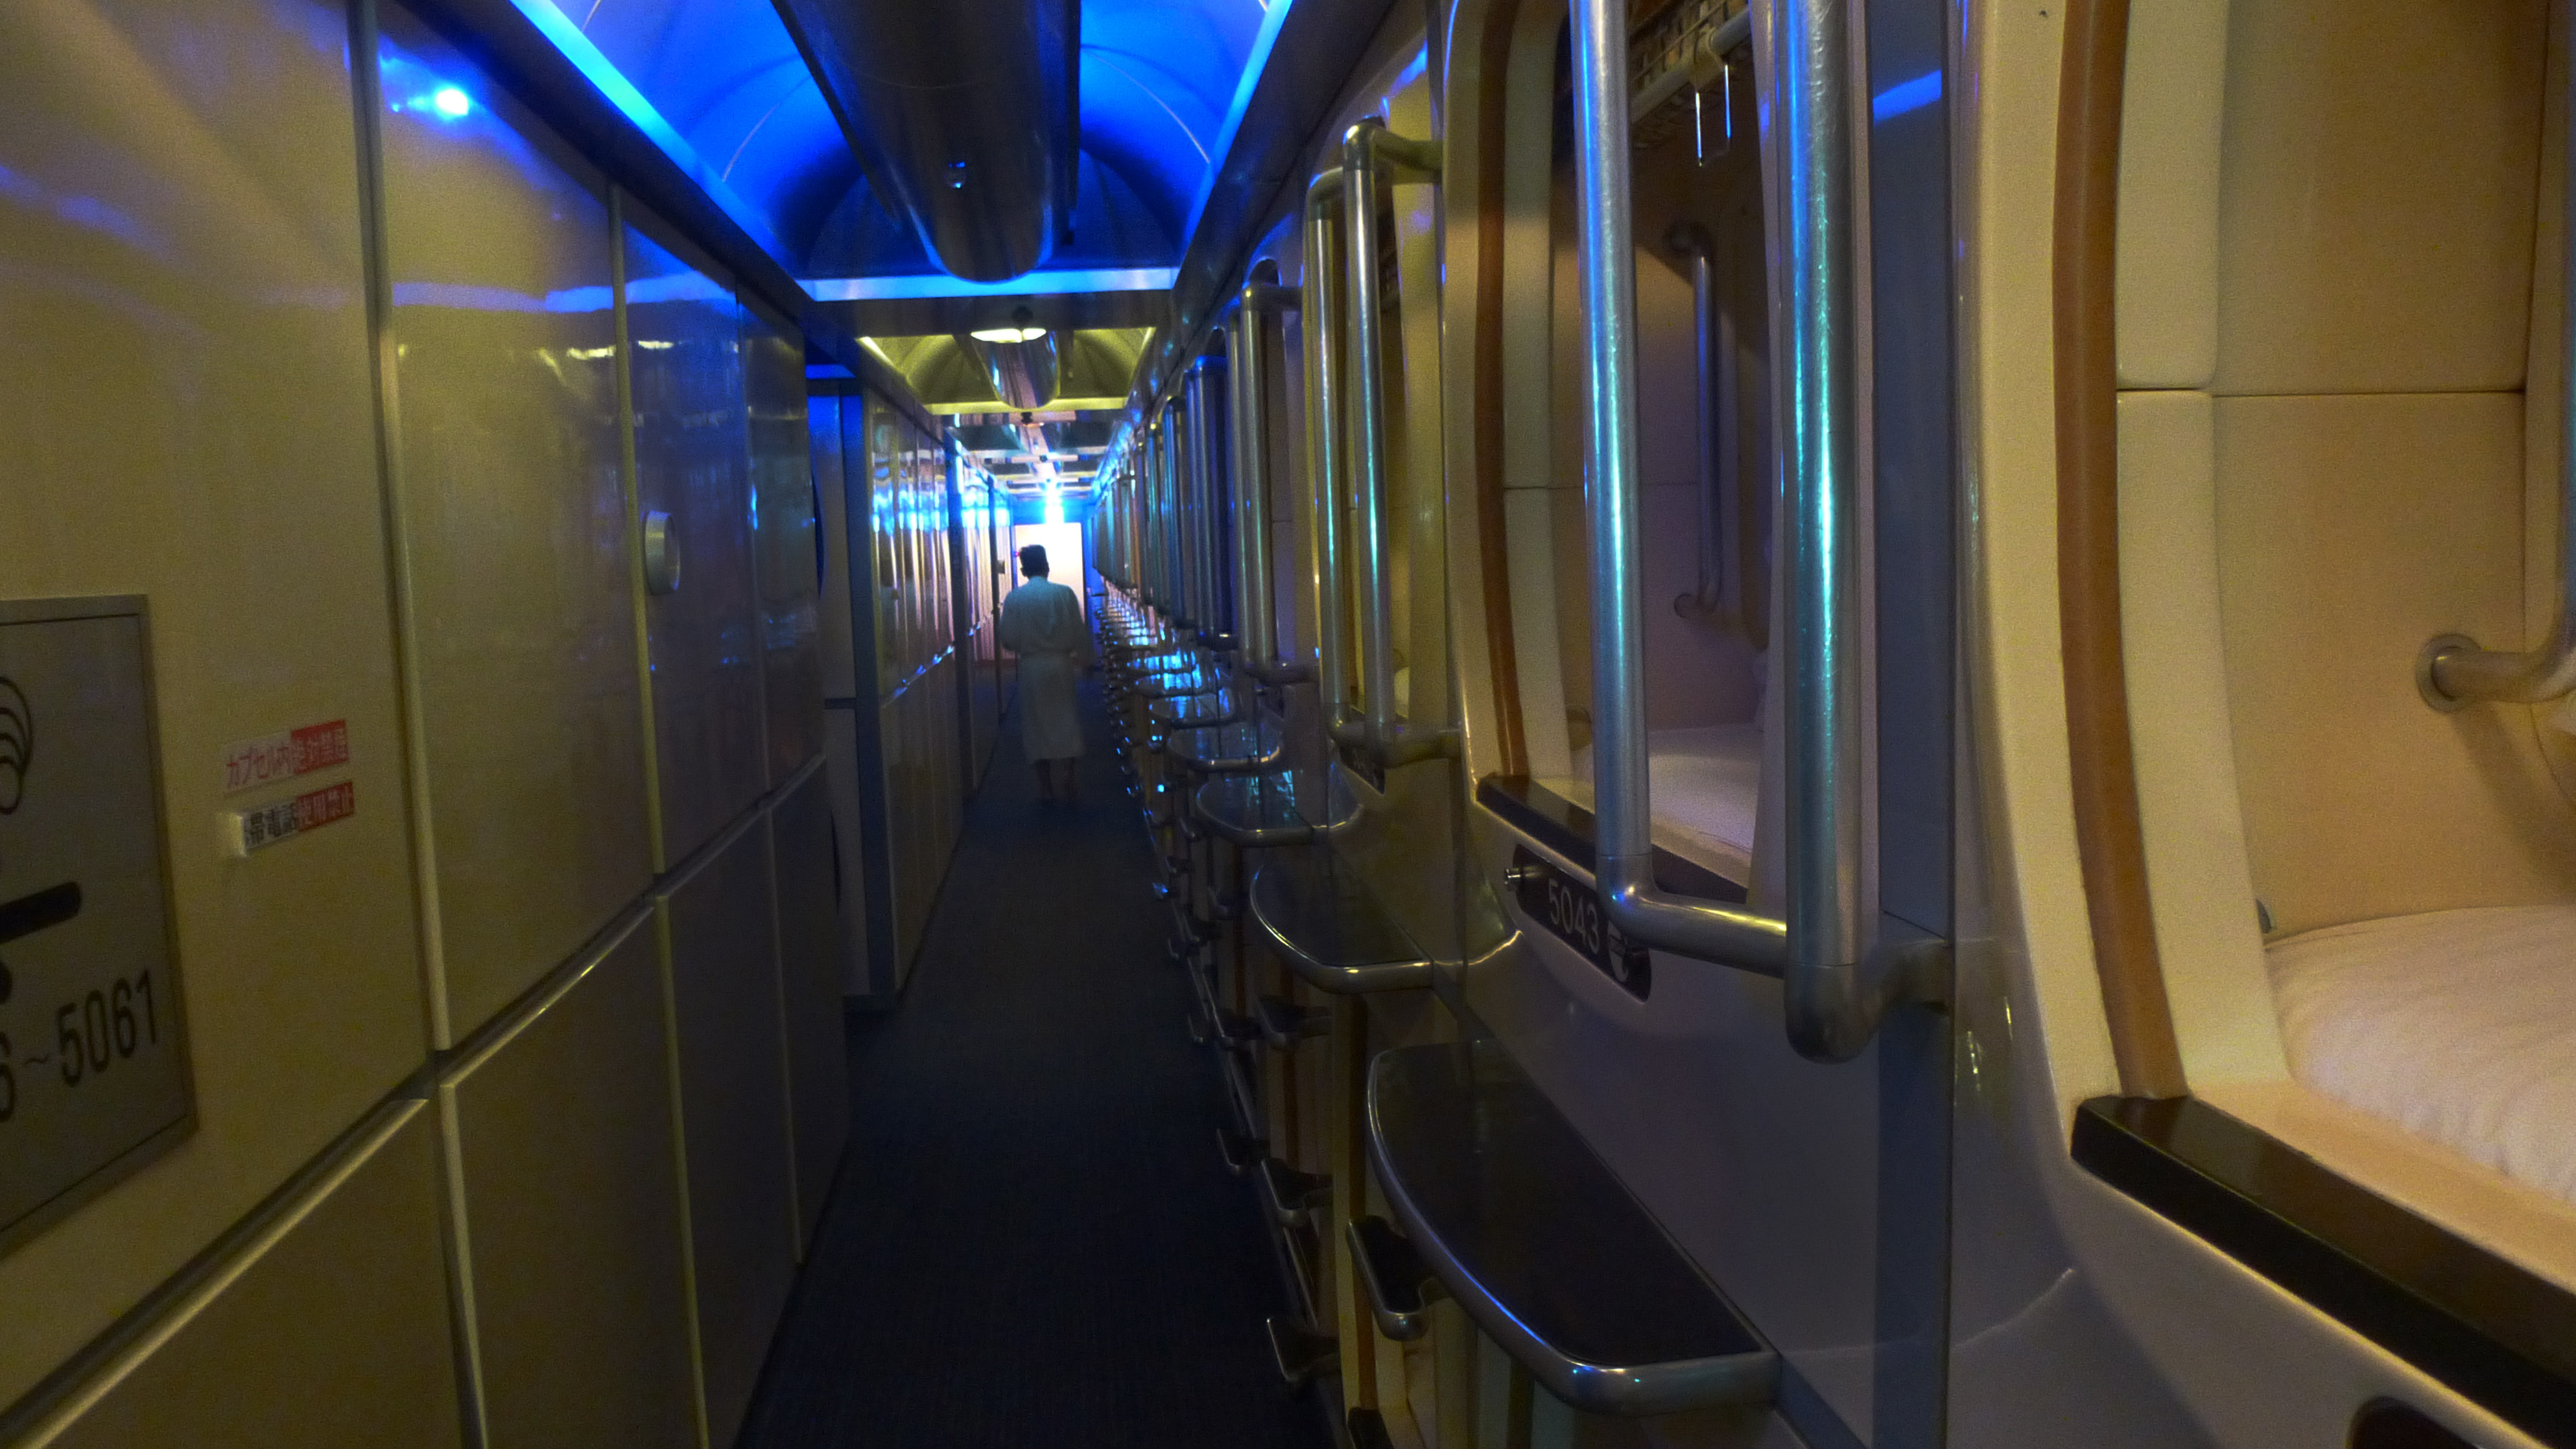 Sleep it off in a capsule hotel. Photo courtesy Igor M.